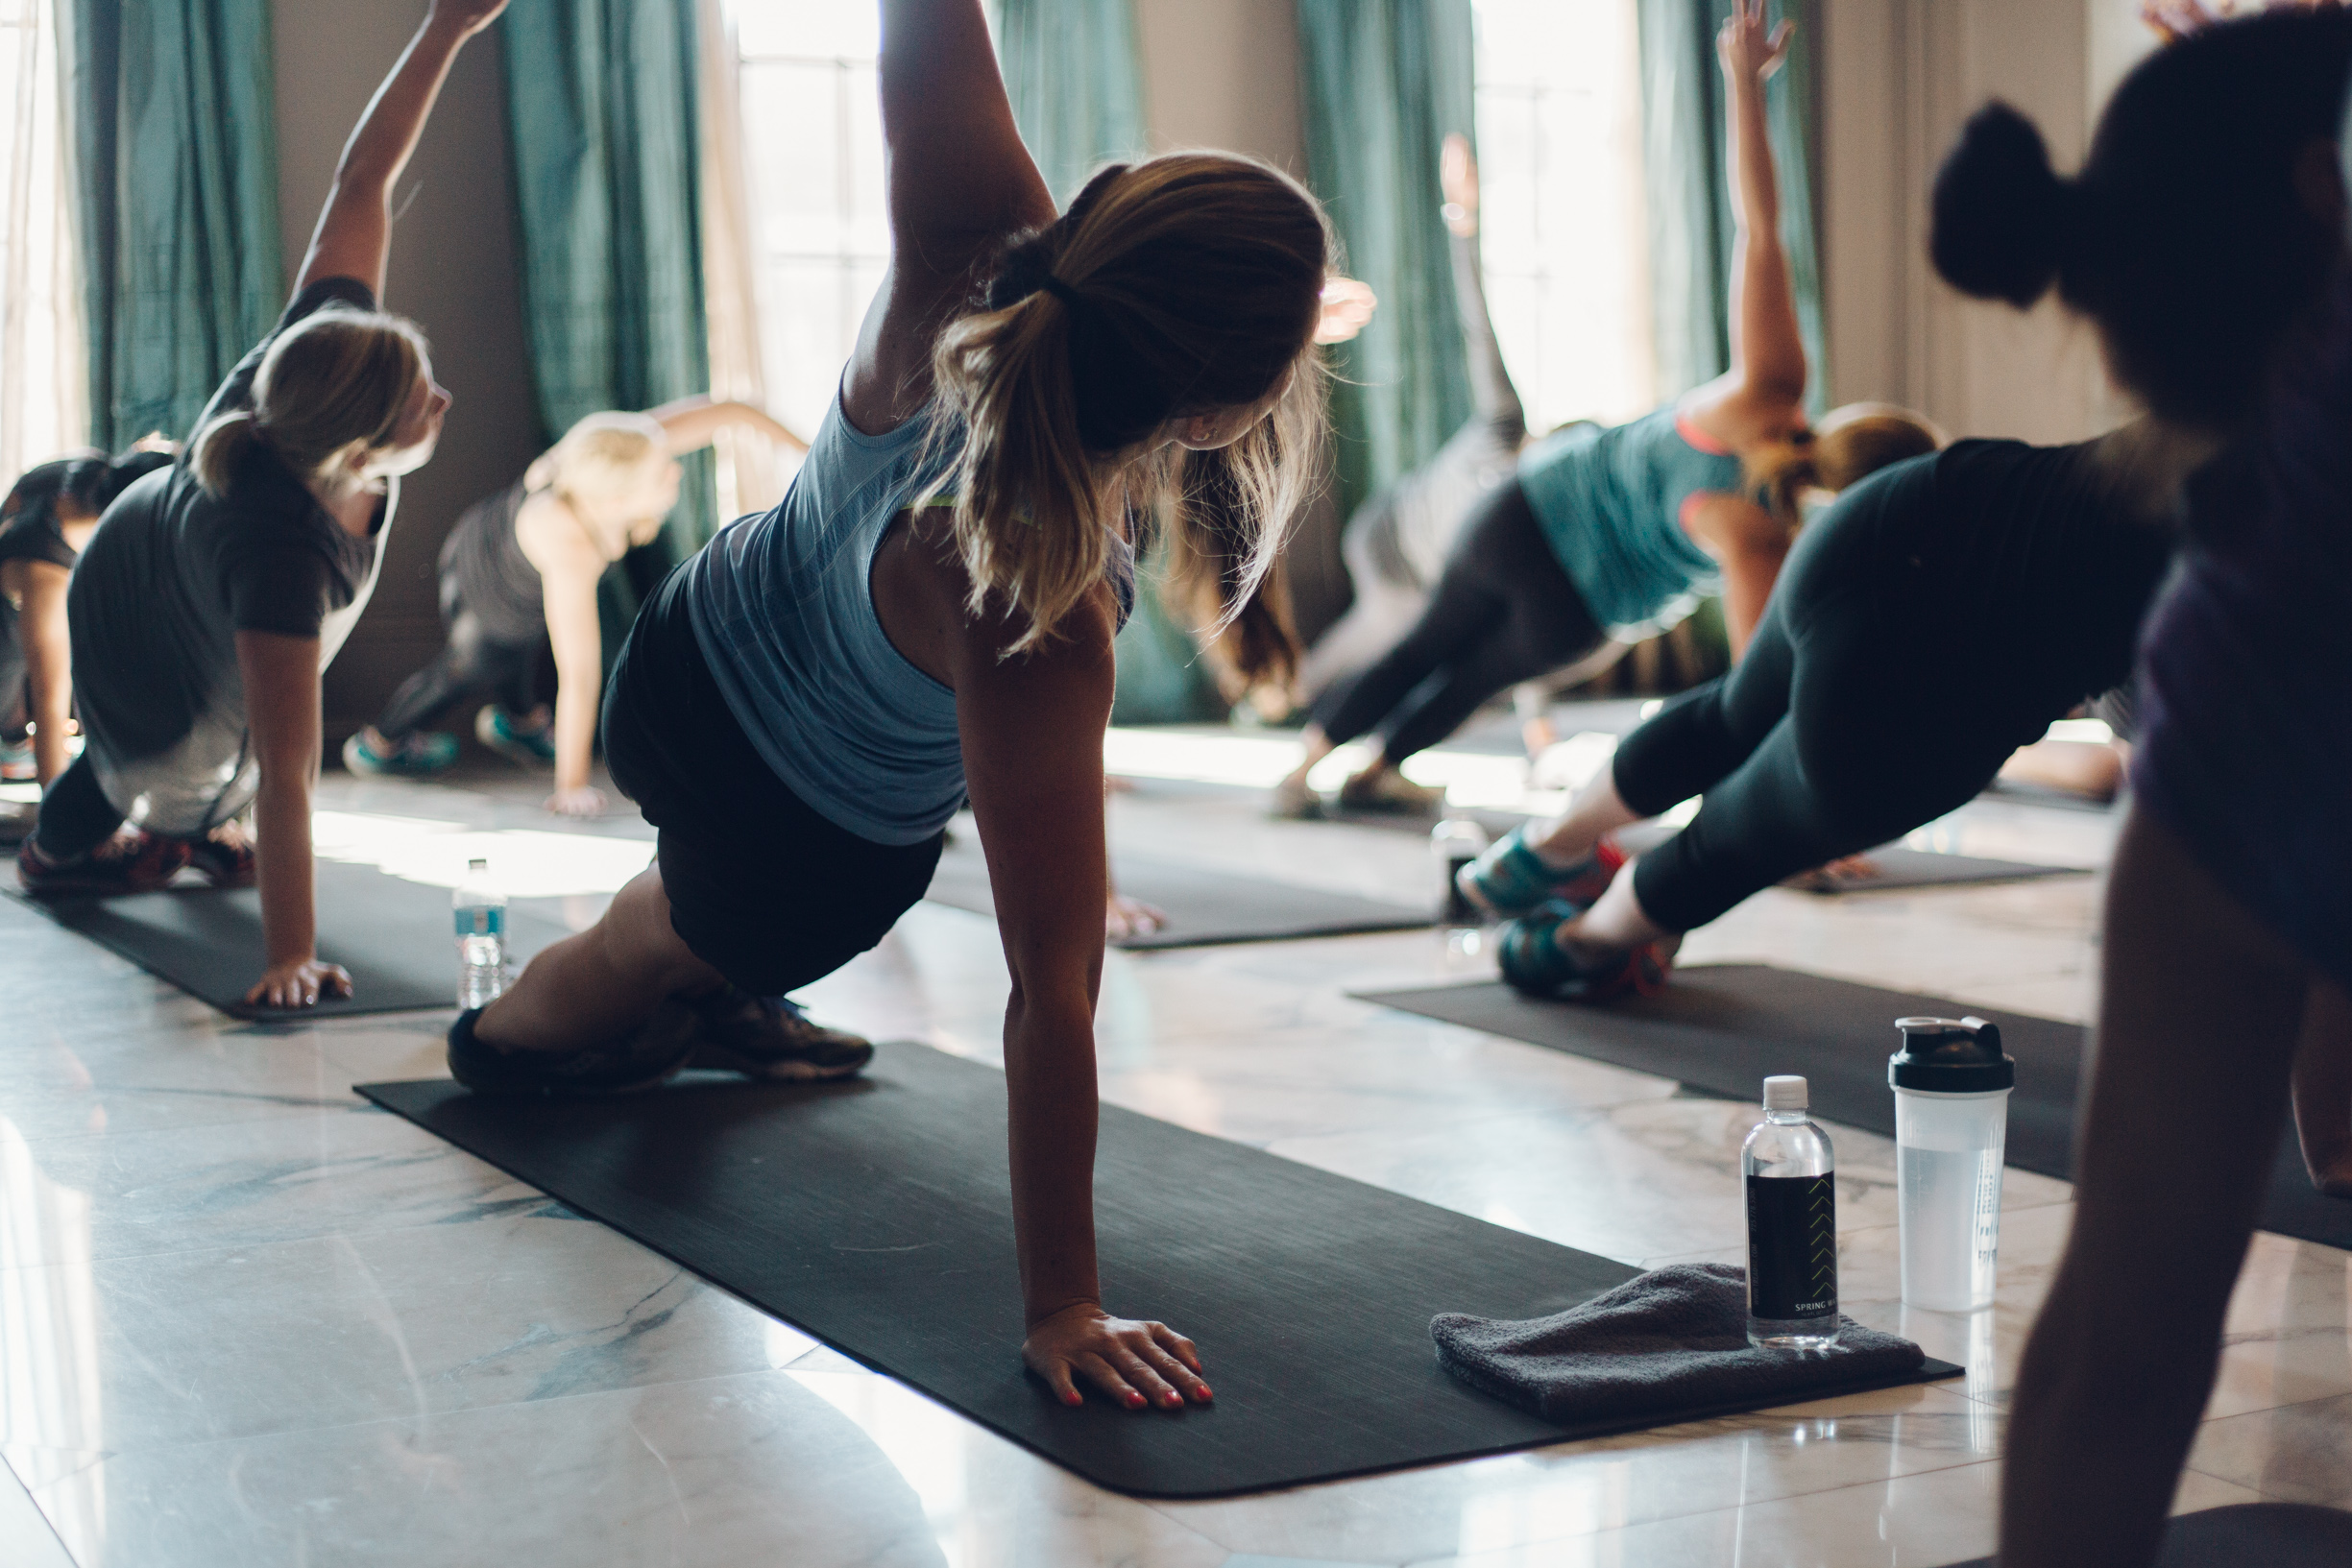 Join us September 10, as we leave the studio to convert L'auberge Casino into a morning of wellness. We will start our morning with a workout led by our founder Nicole Williamson followed by a Magpie Cafe curated brunch! There is also an option to sponsor someone who has been affected by the floods in Louisiana so they can experience a morning of wellness, as well.